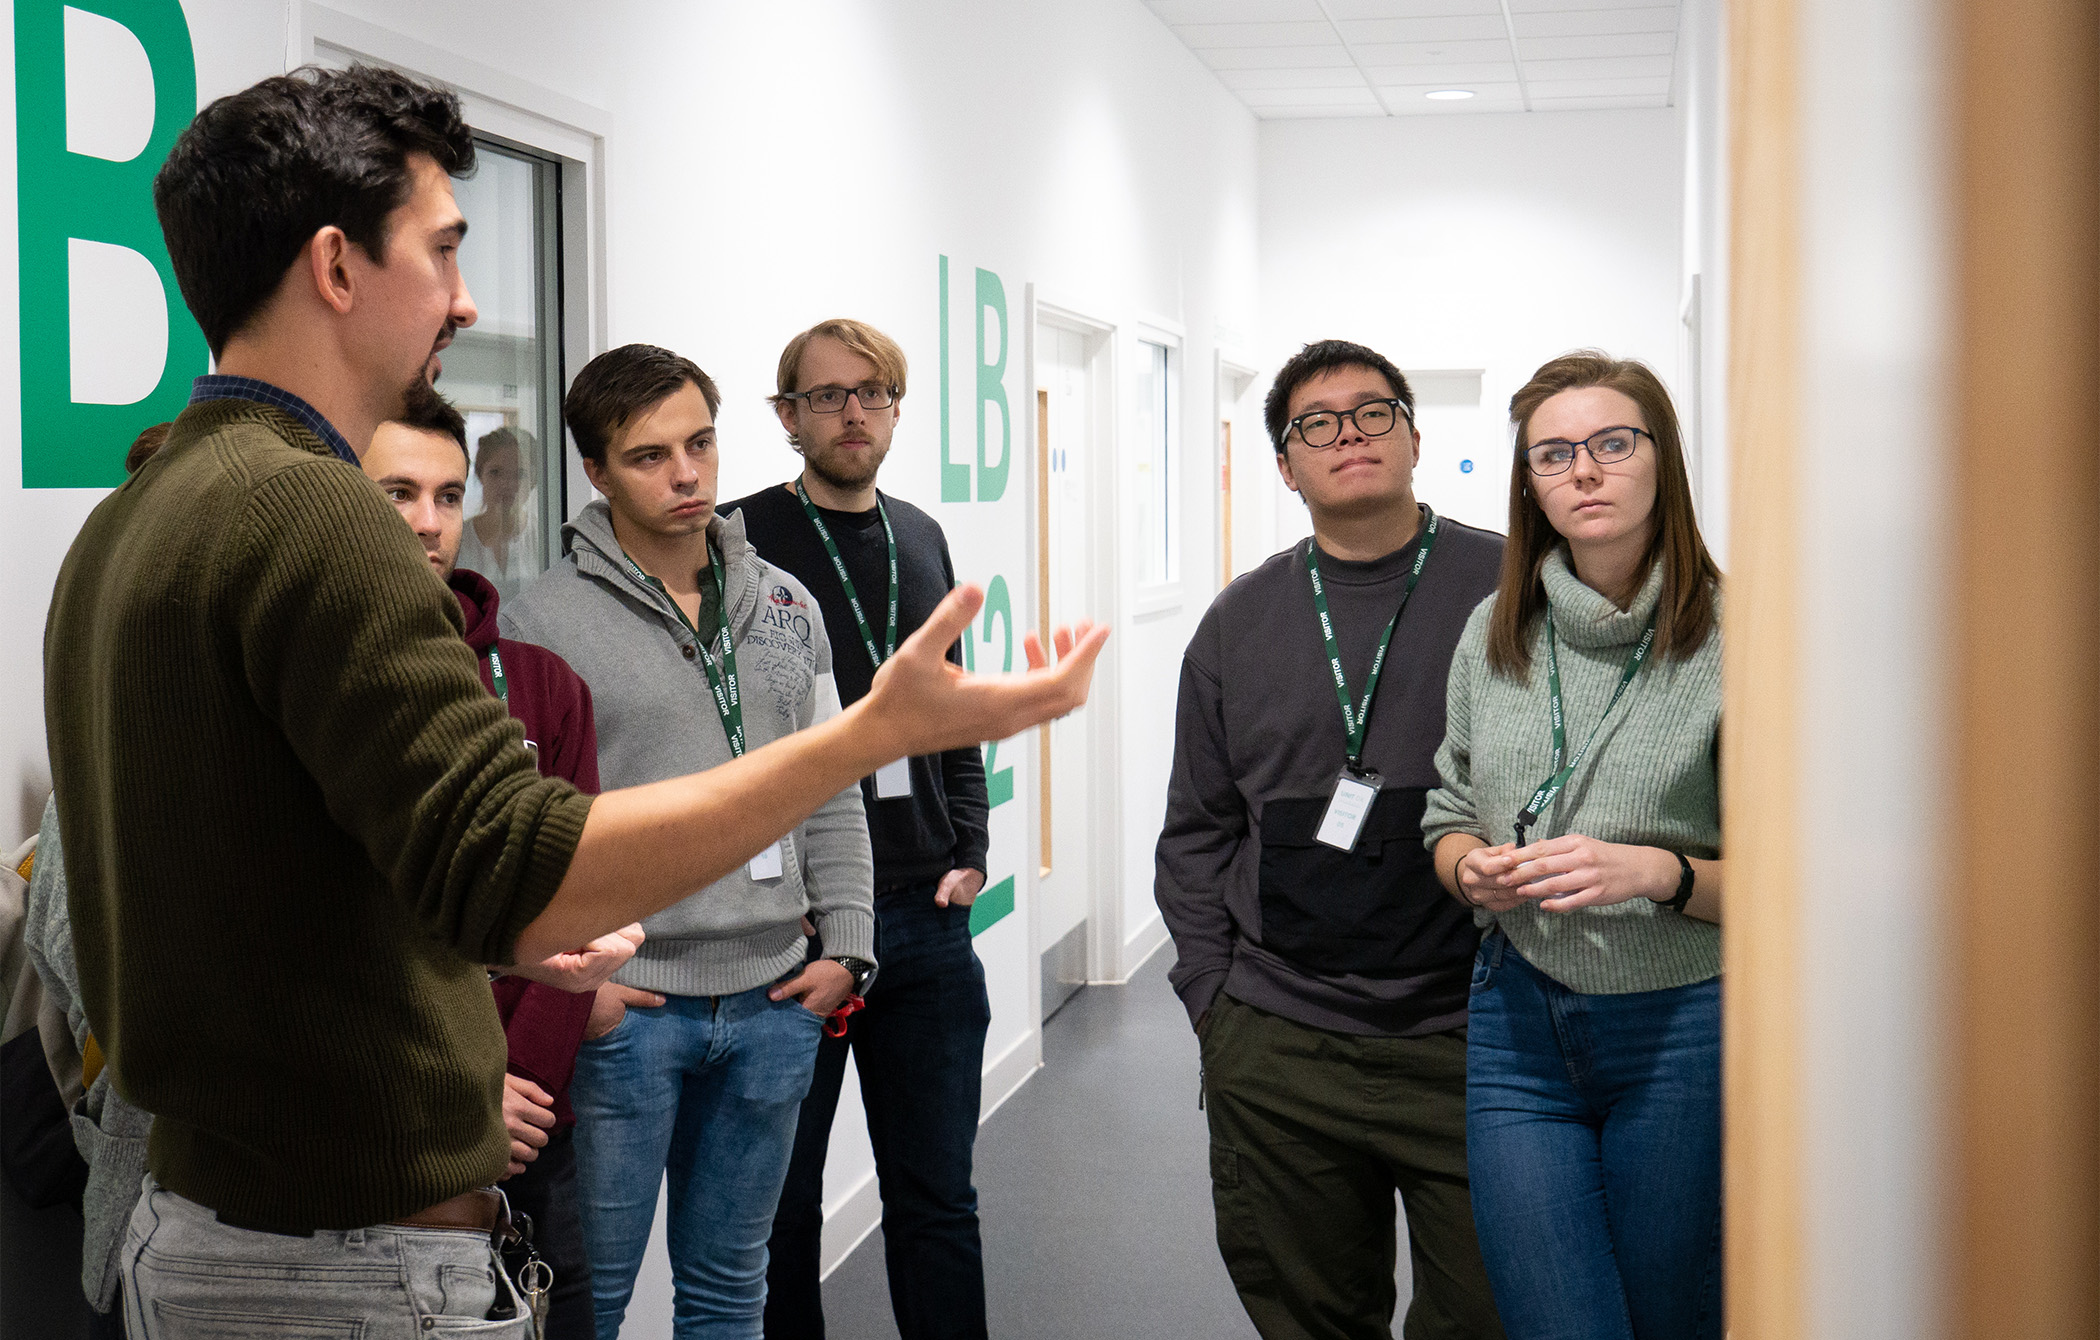 unit dx tour with spin up science founder ben miles